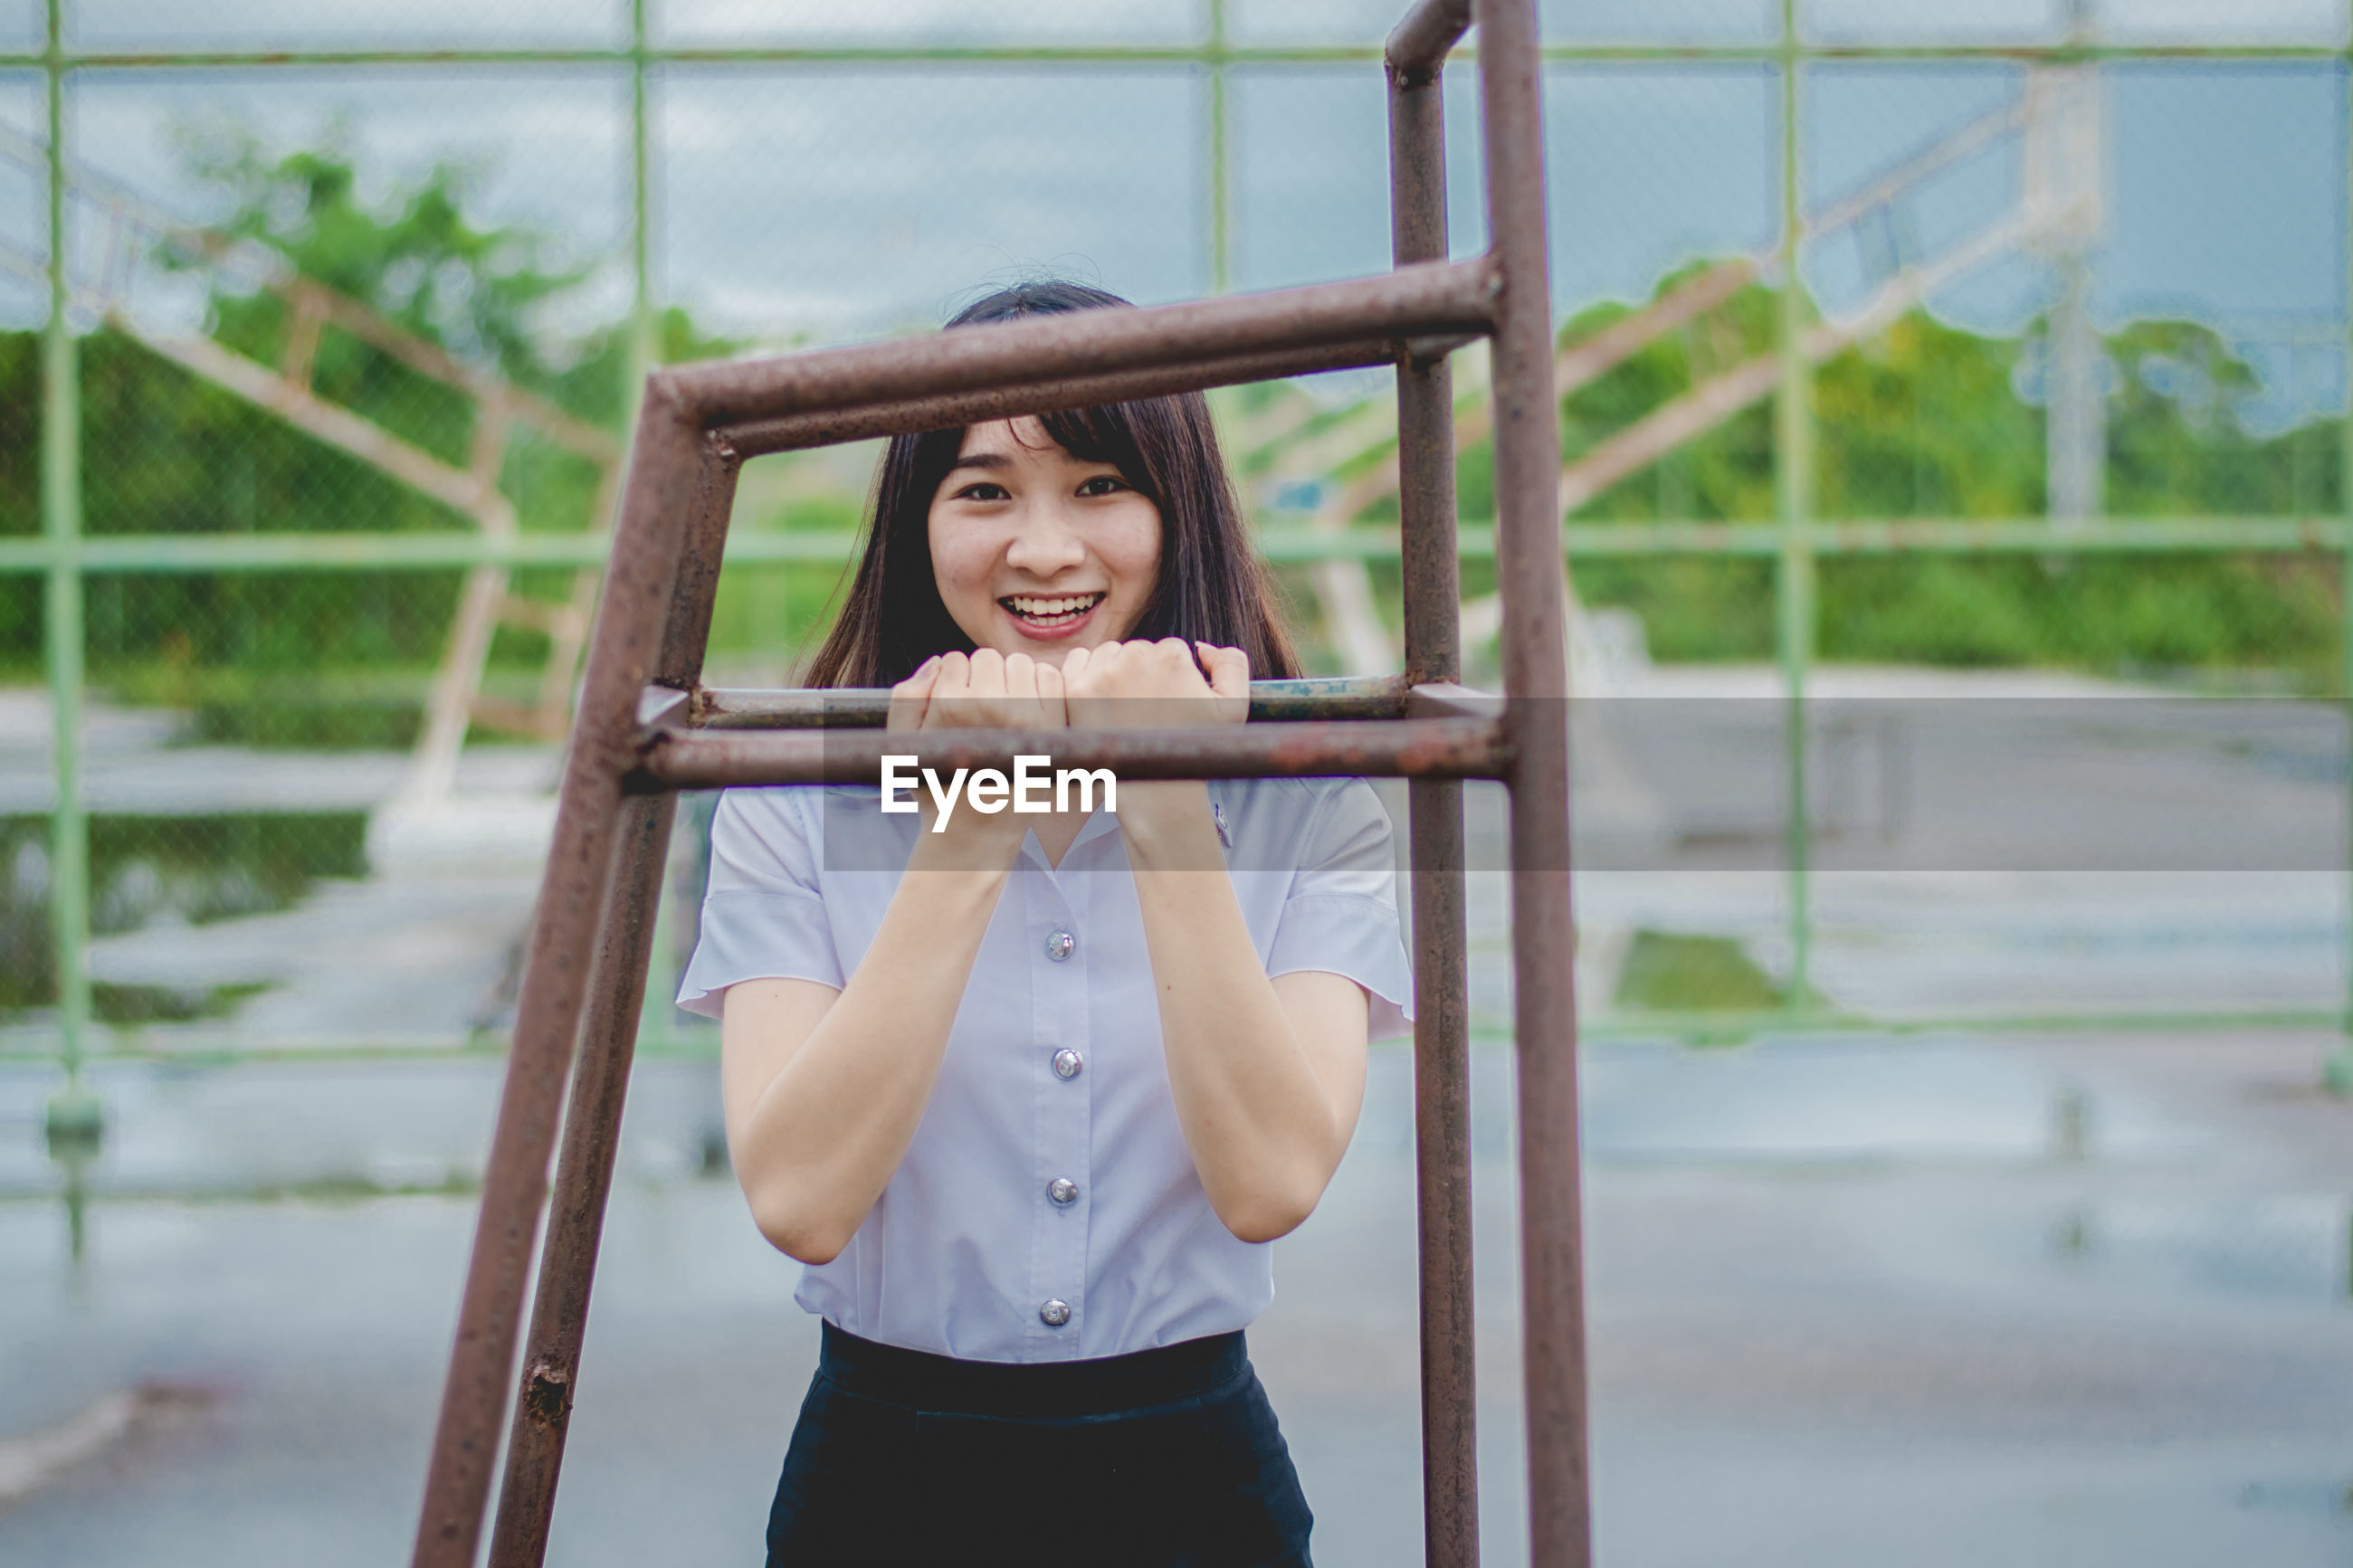 Portrait of smiling young woman standing by metal at playground during rainy season